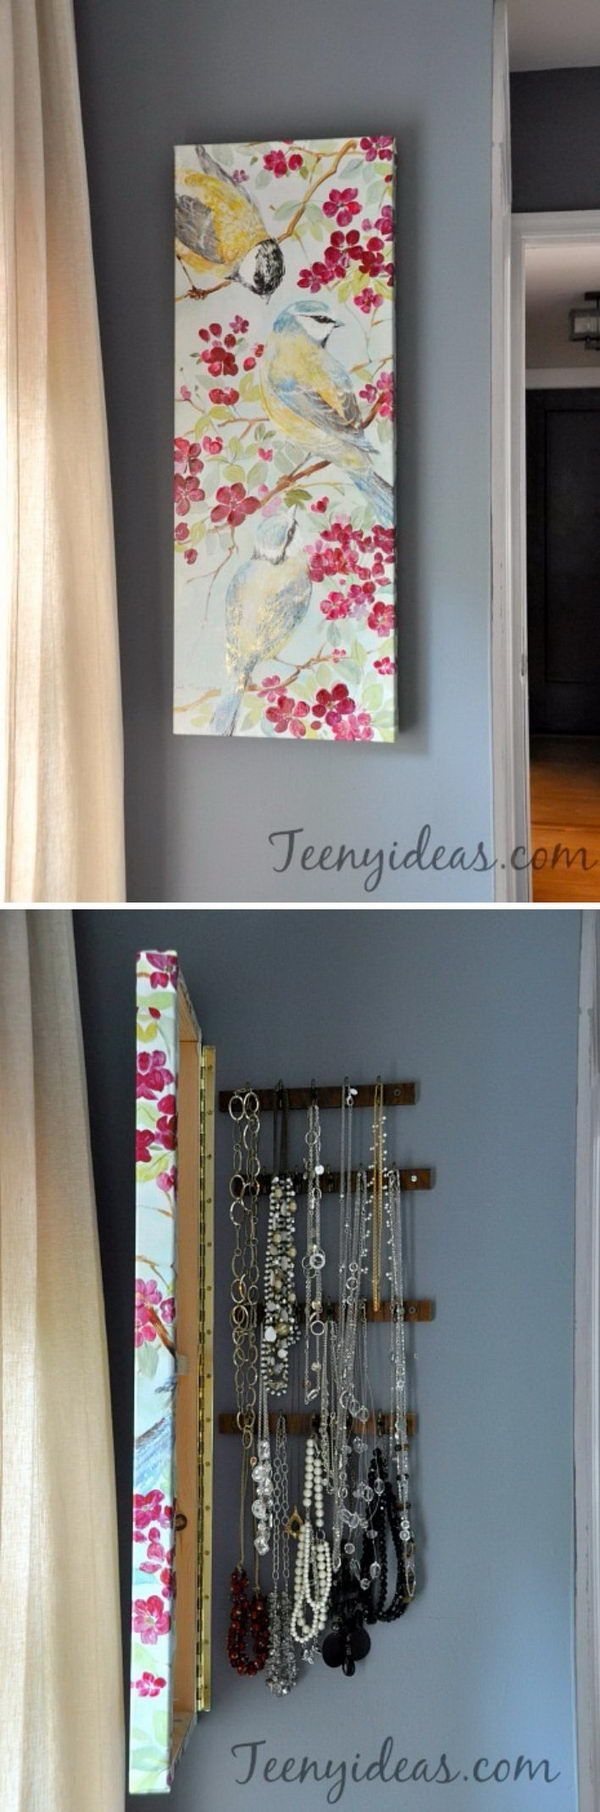 15 chic hidden storage ideas wall canvas jewelry for Hidden storage ideas